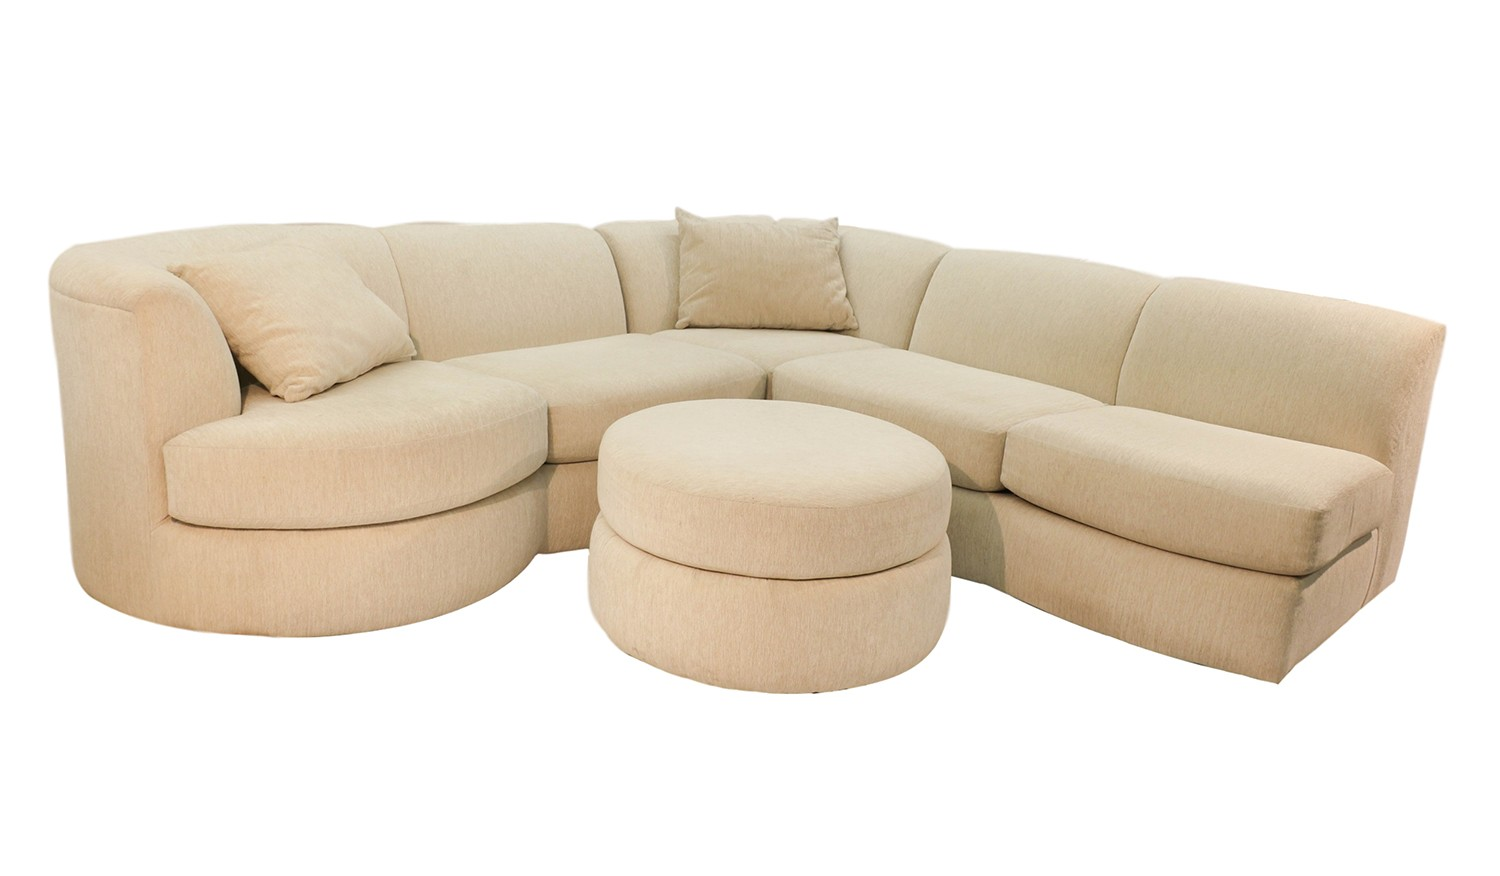 Weiman mid century modern sectional sofa with ottoman for Sofa ottomane